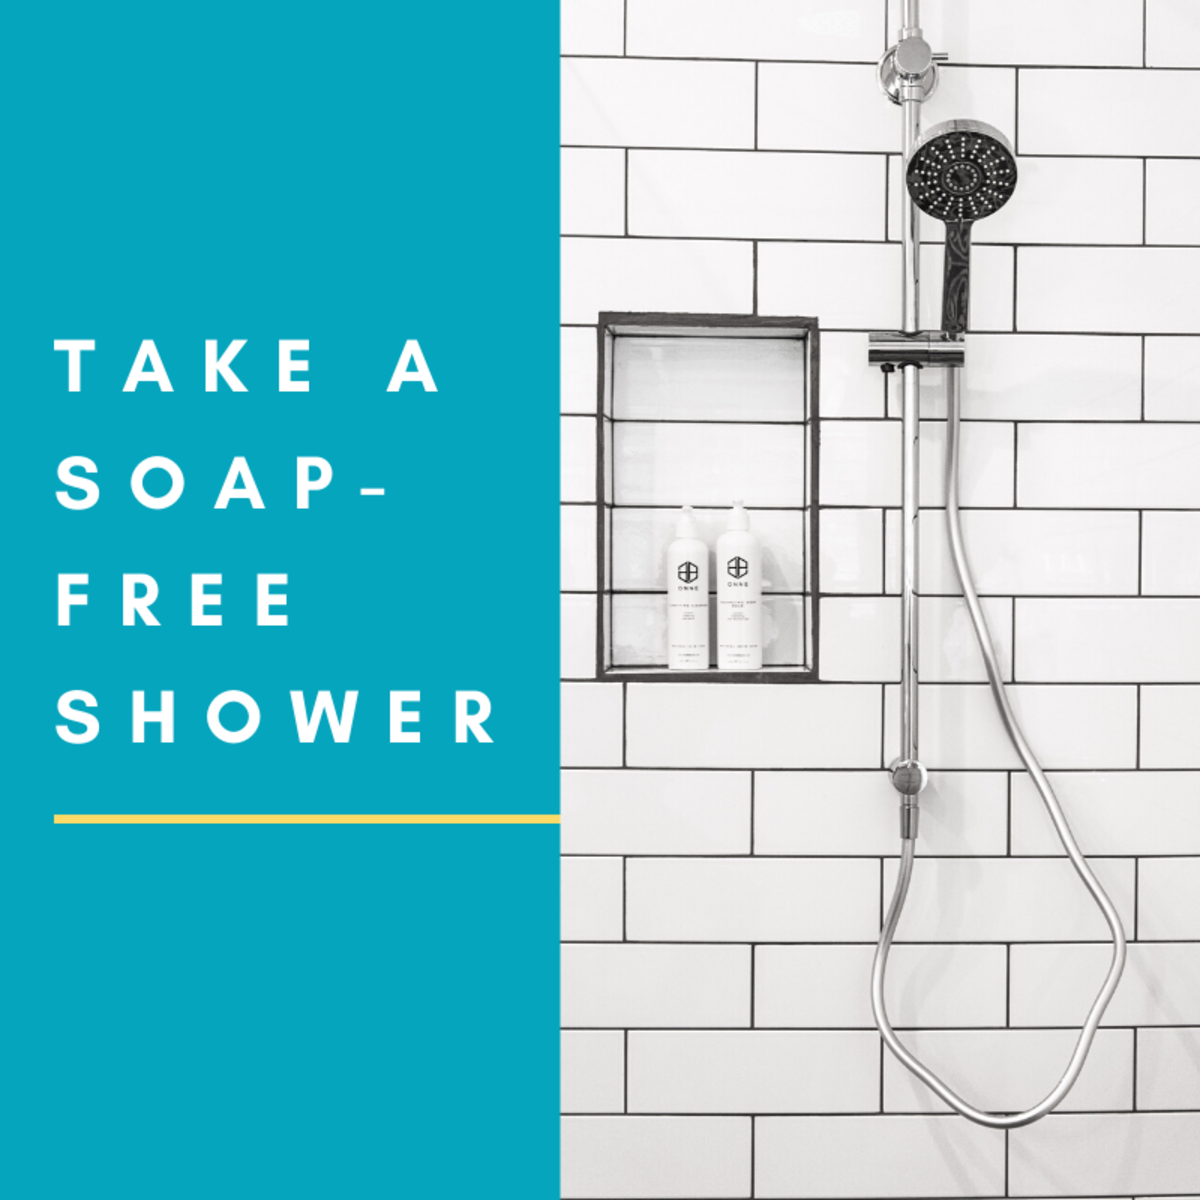 Lose the Soap: Take a Soap-Free Shower (And Still Smell Sweet)